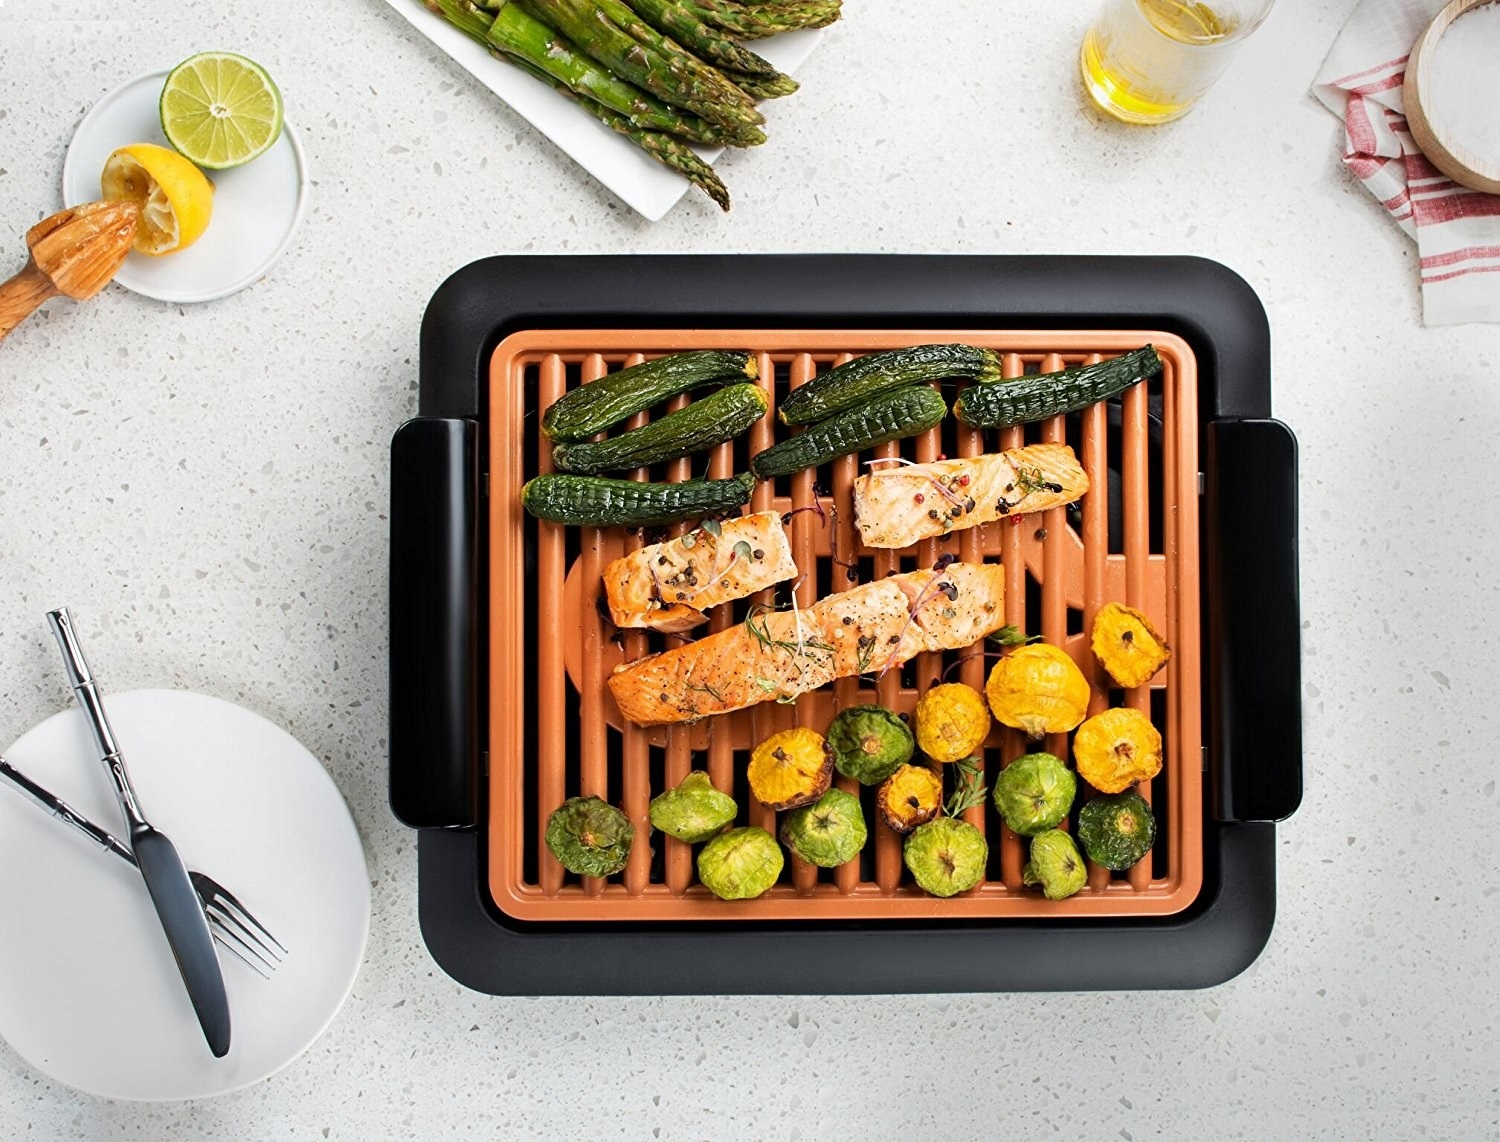 salmon and vegetables cooking on a electric smokeless grill